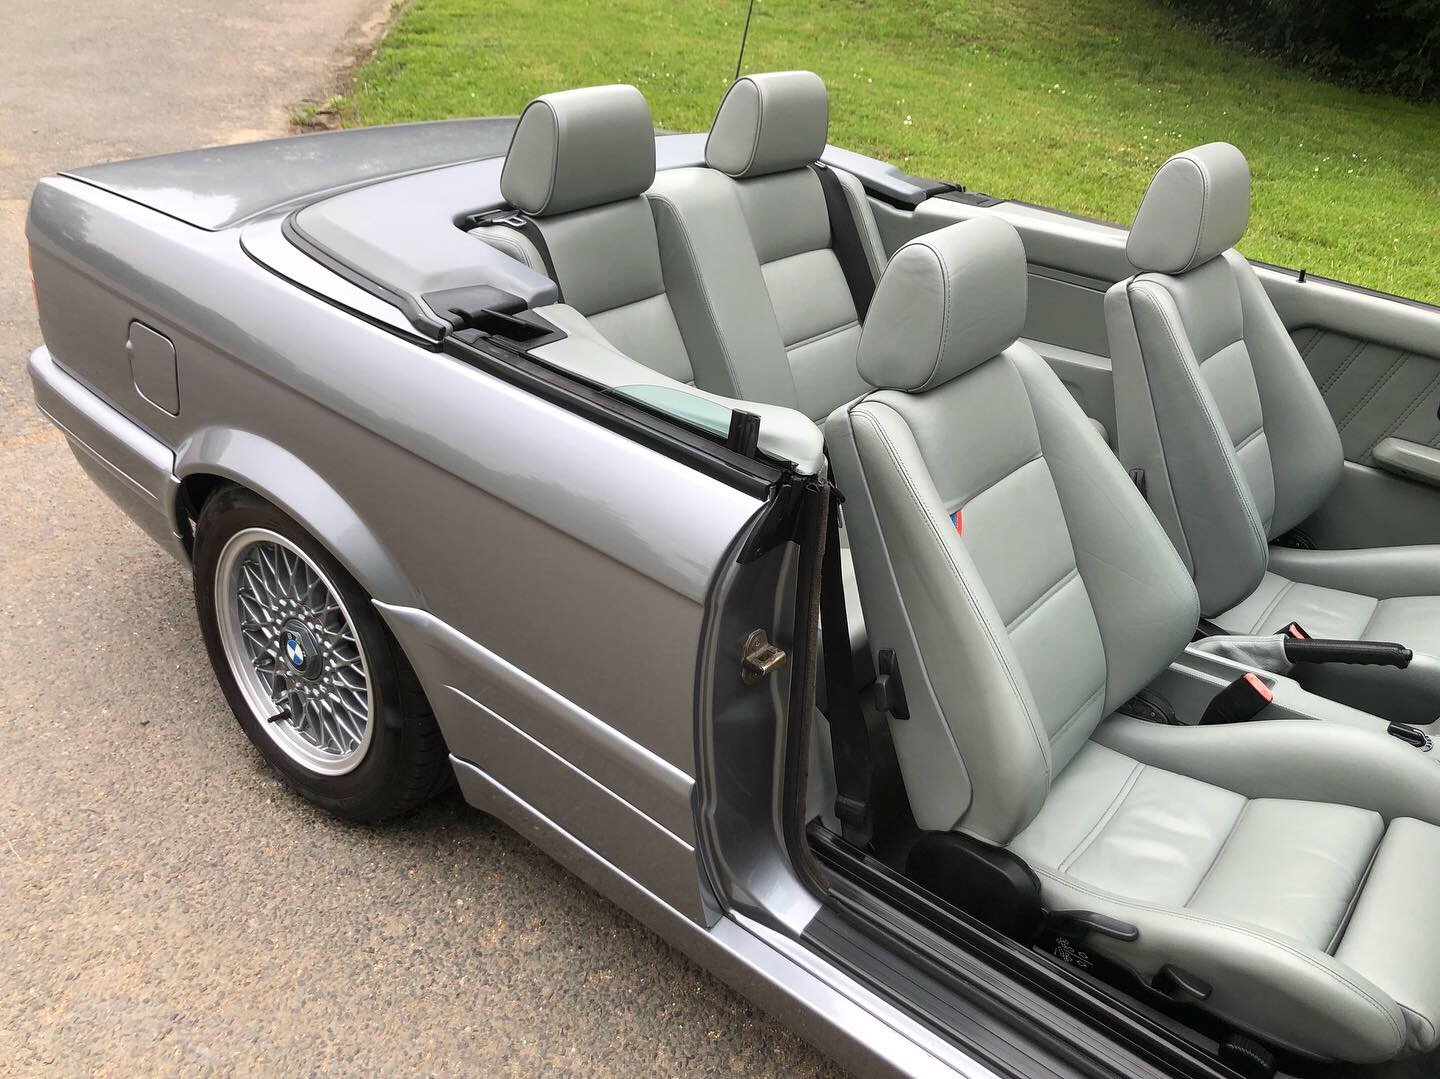 1989 BMW 3 SERIES E30 325i MOTORSPORT CONVERTIBLE 1 OF 250 For Sale (picture 3 of 6)